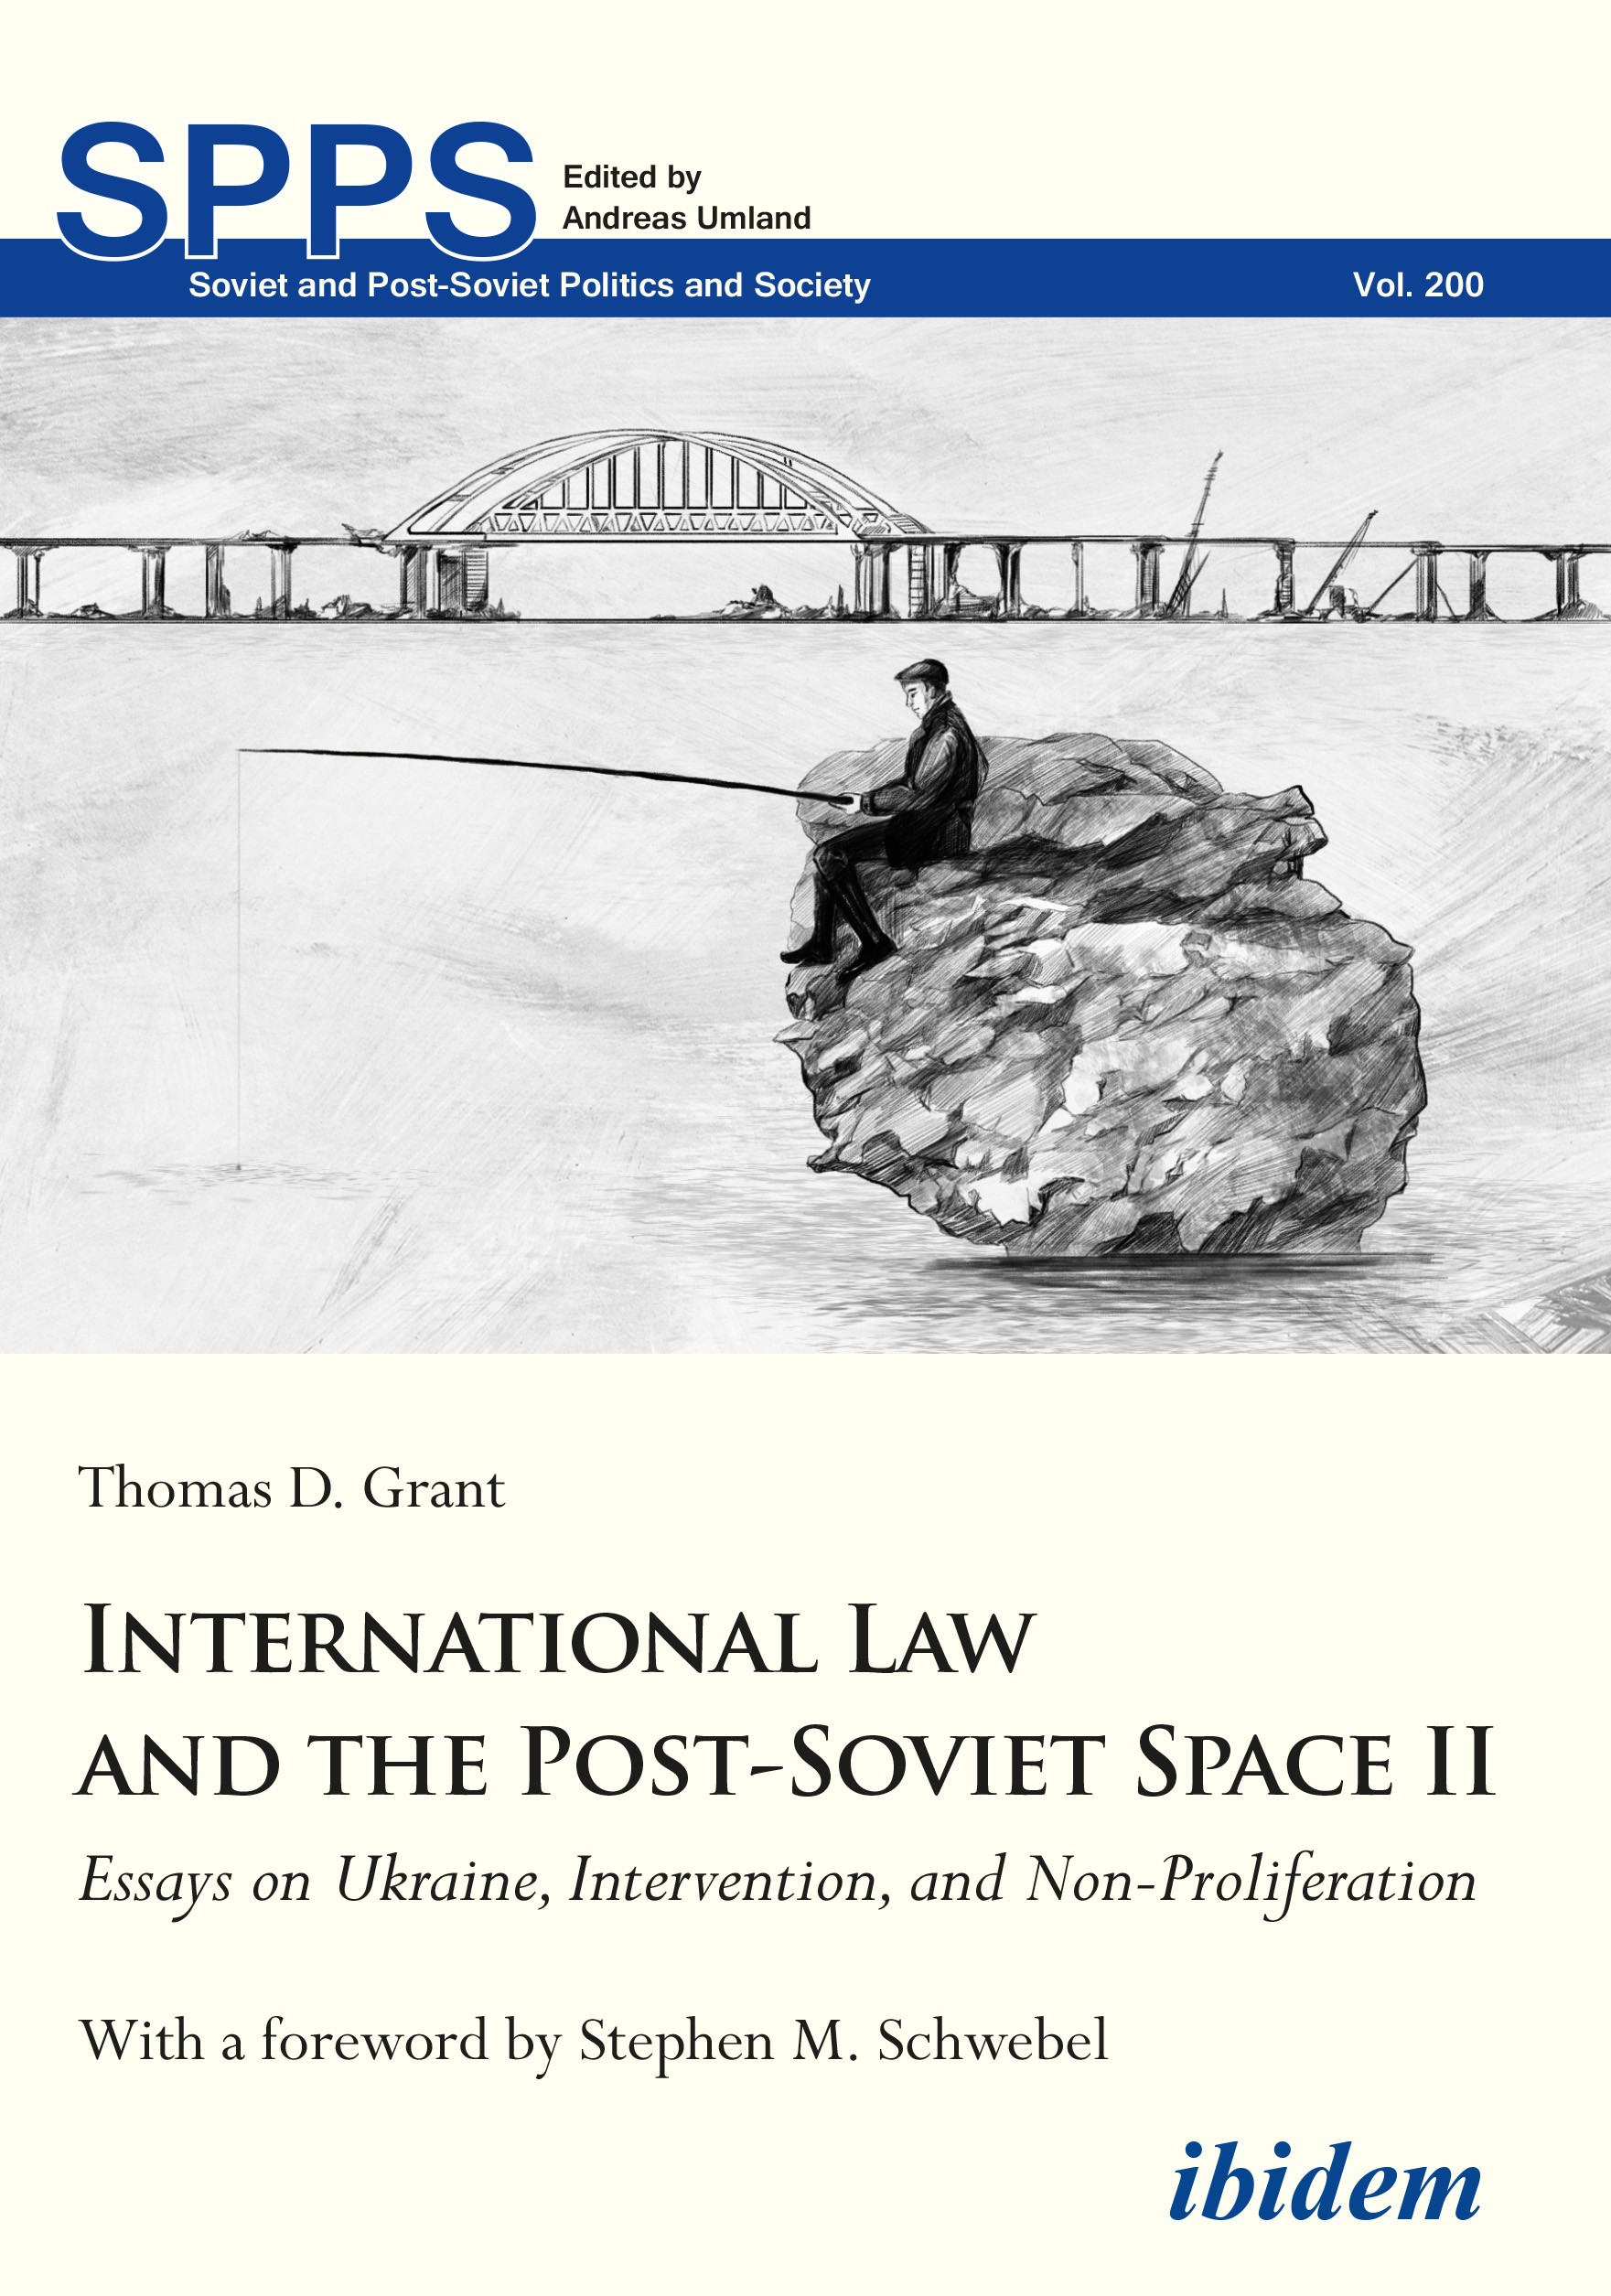 International Law and the Post-Soviet Space II